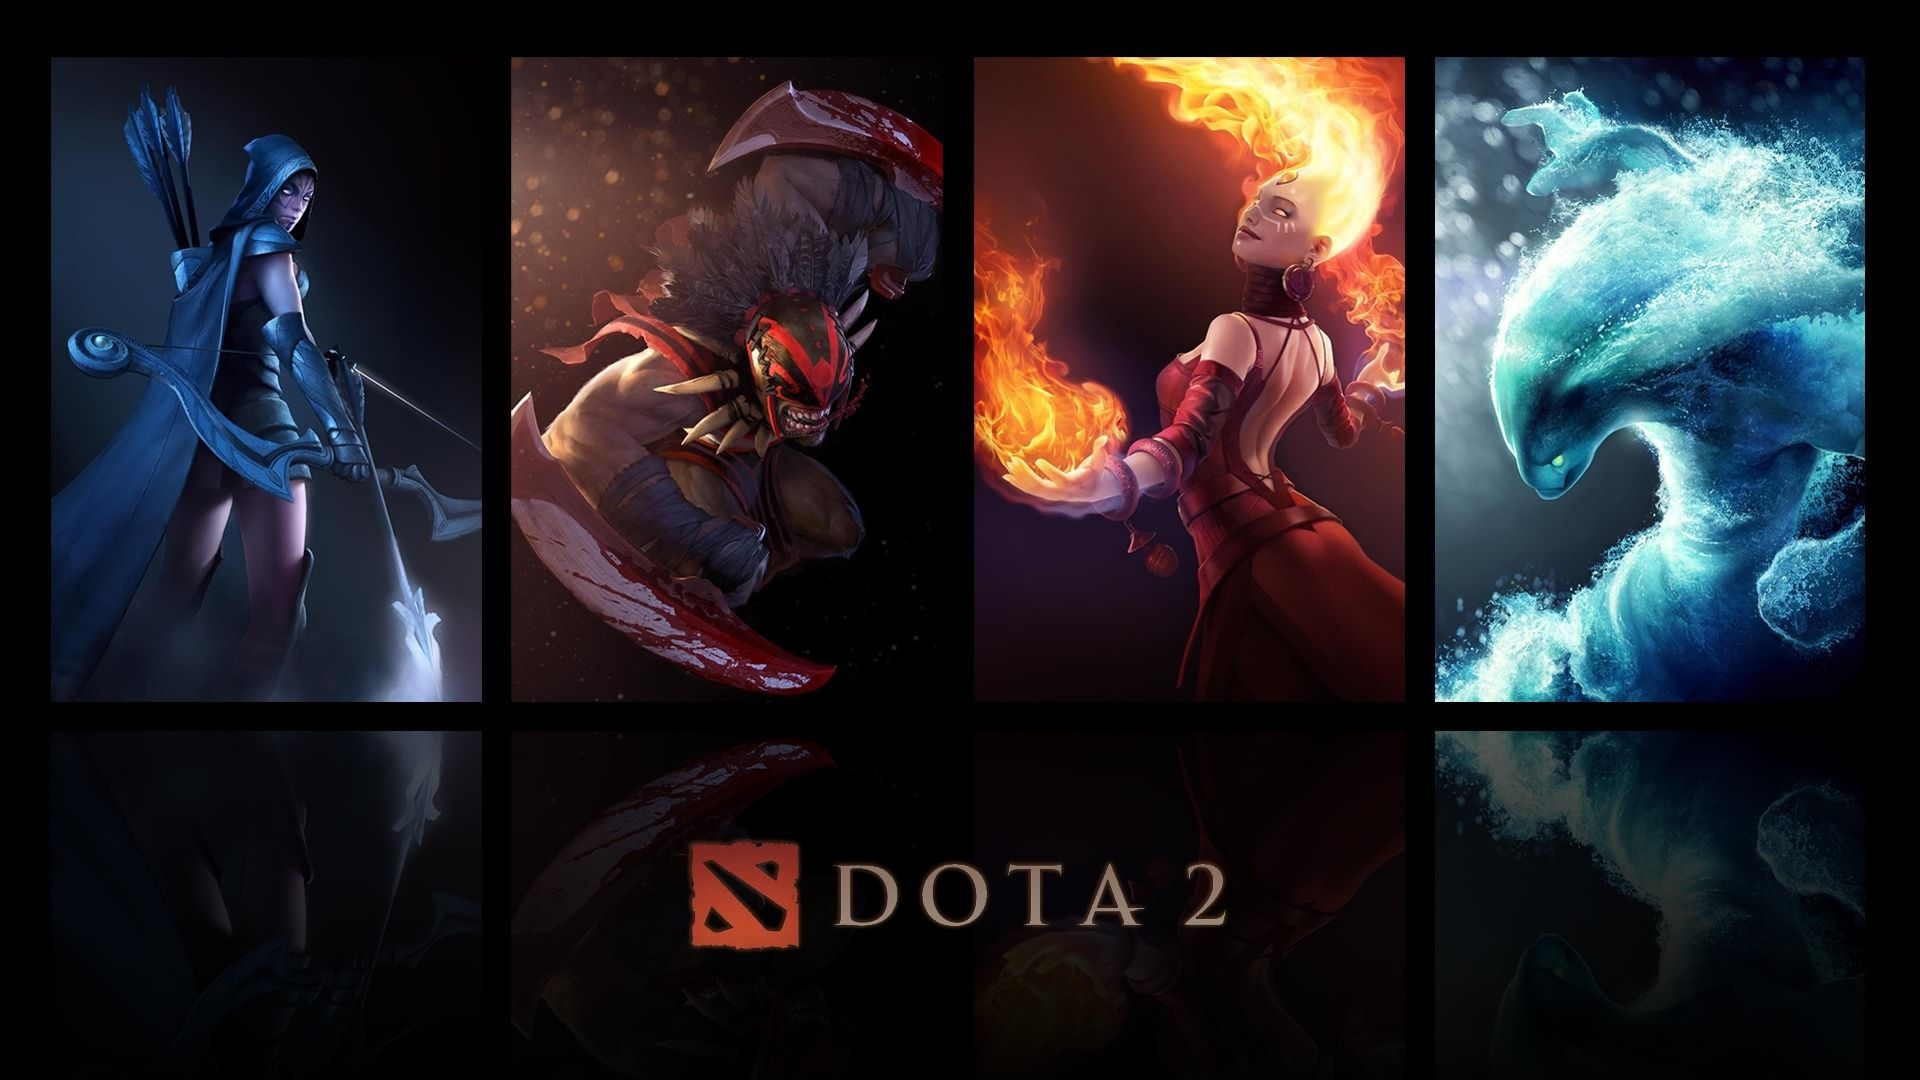 Dota 2 Heroes Wallpaper HD | Computer in 2019 | Dota 2